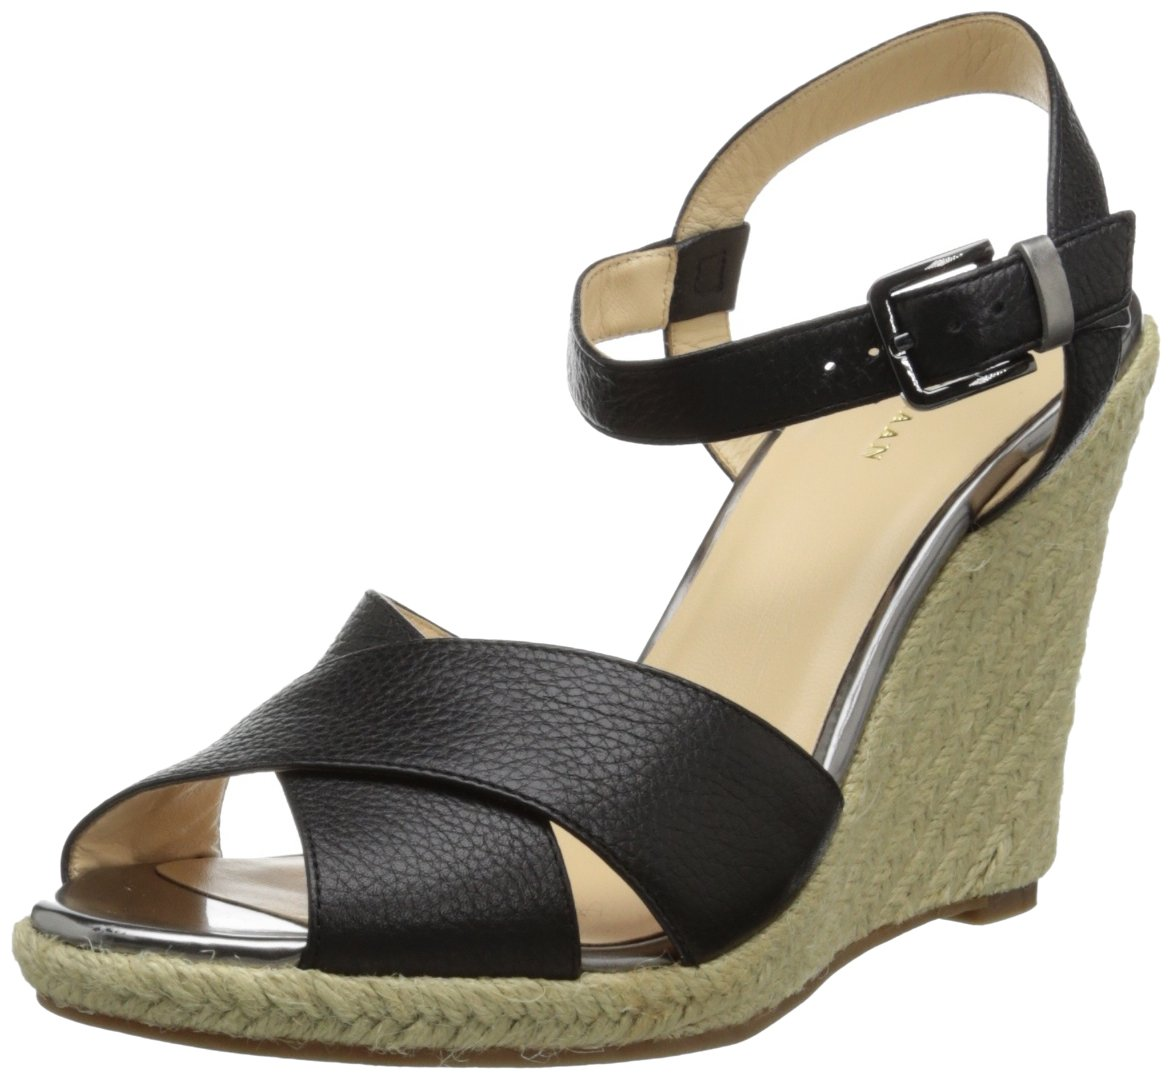 Cole Haan Women's Hart Wedge Sandal B00D7L0XUQ 9.5 B(M) US|Black